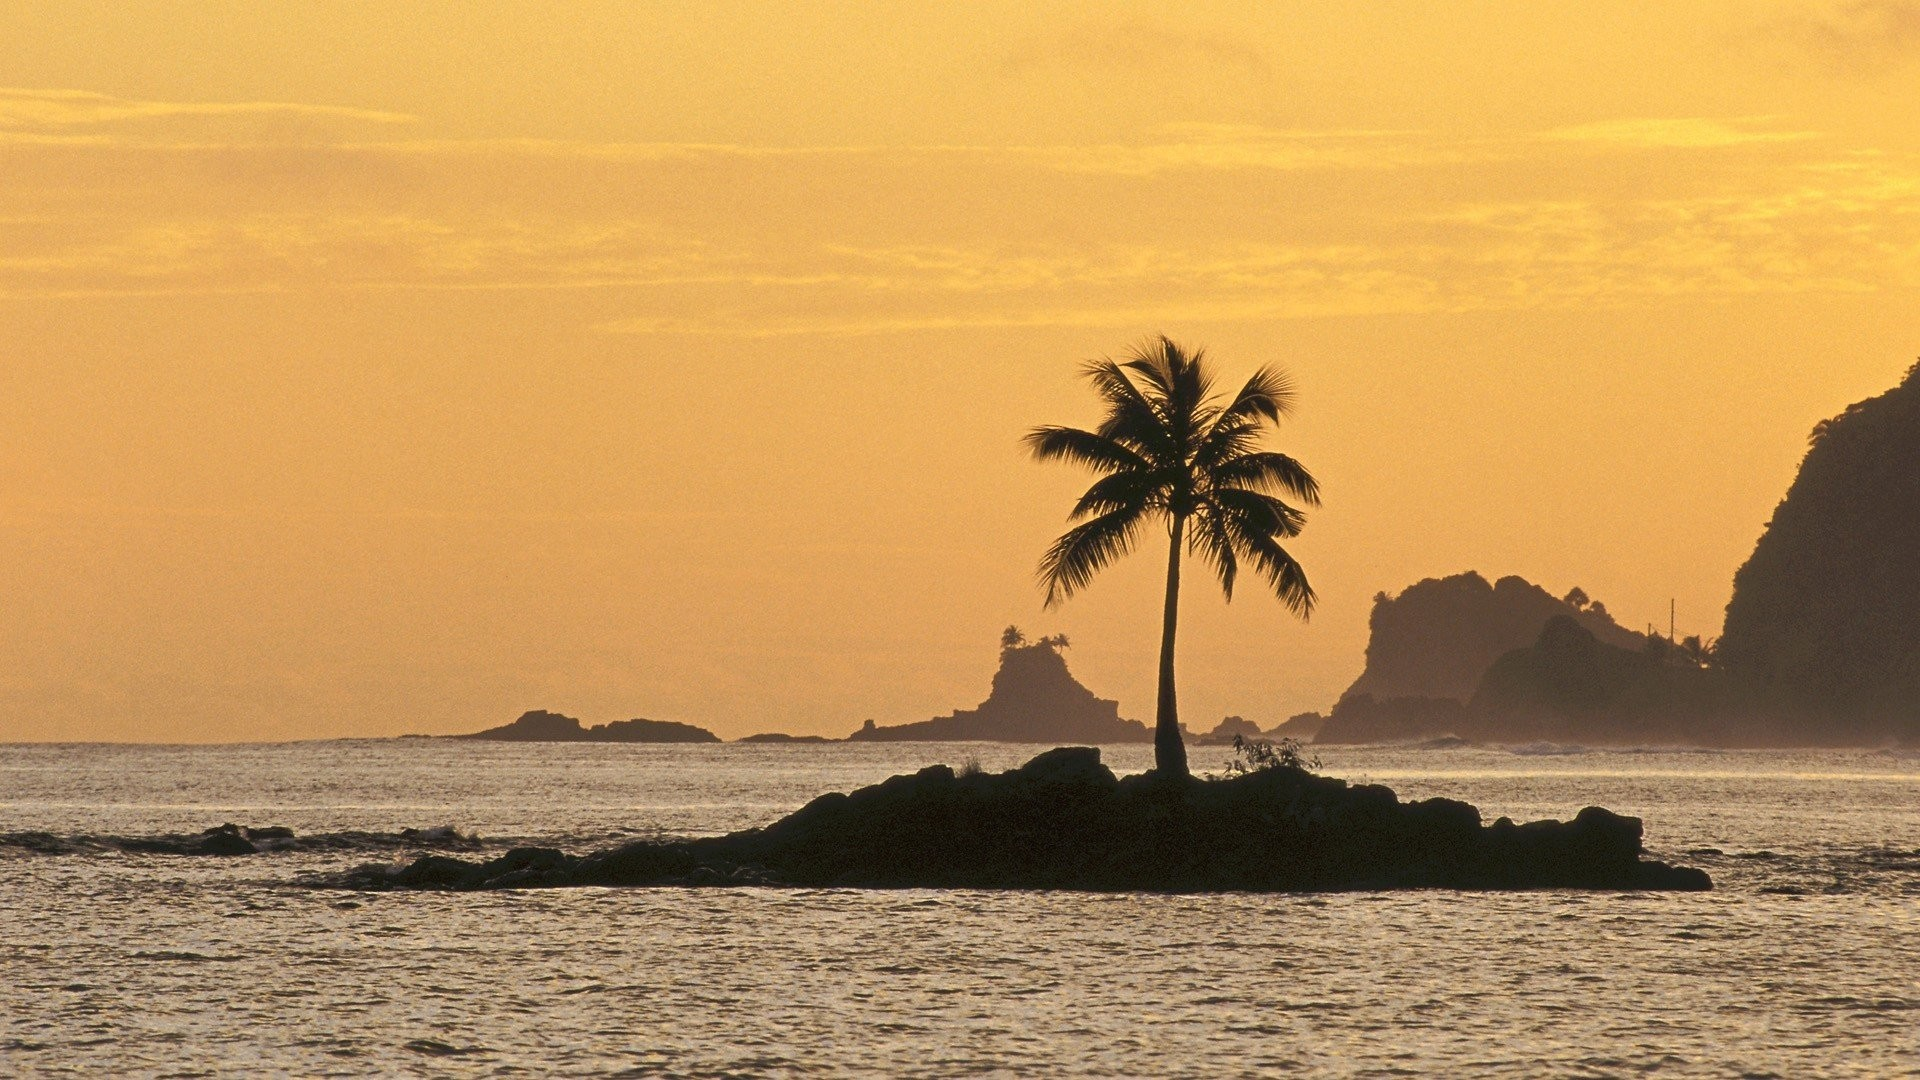 Res: 1920x1080, Coconut Ocean Islands Sunset Tree Photos Of Nature -